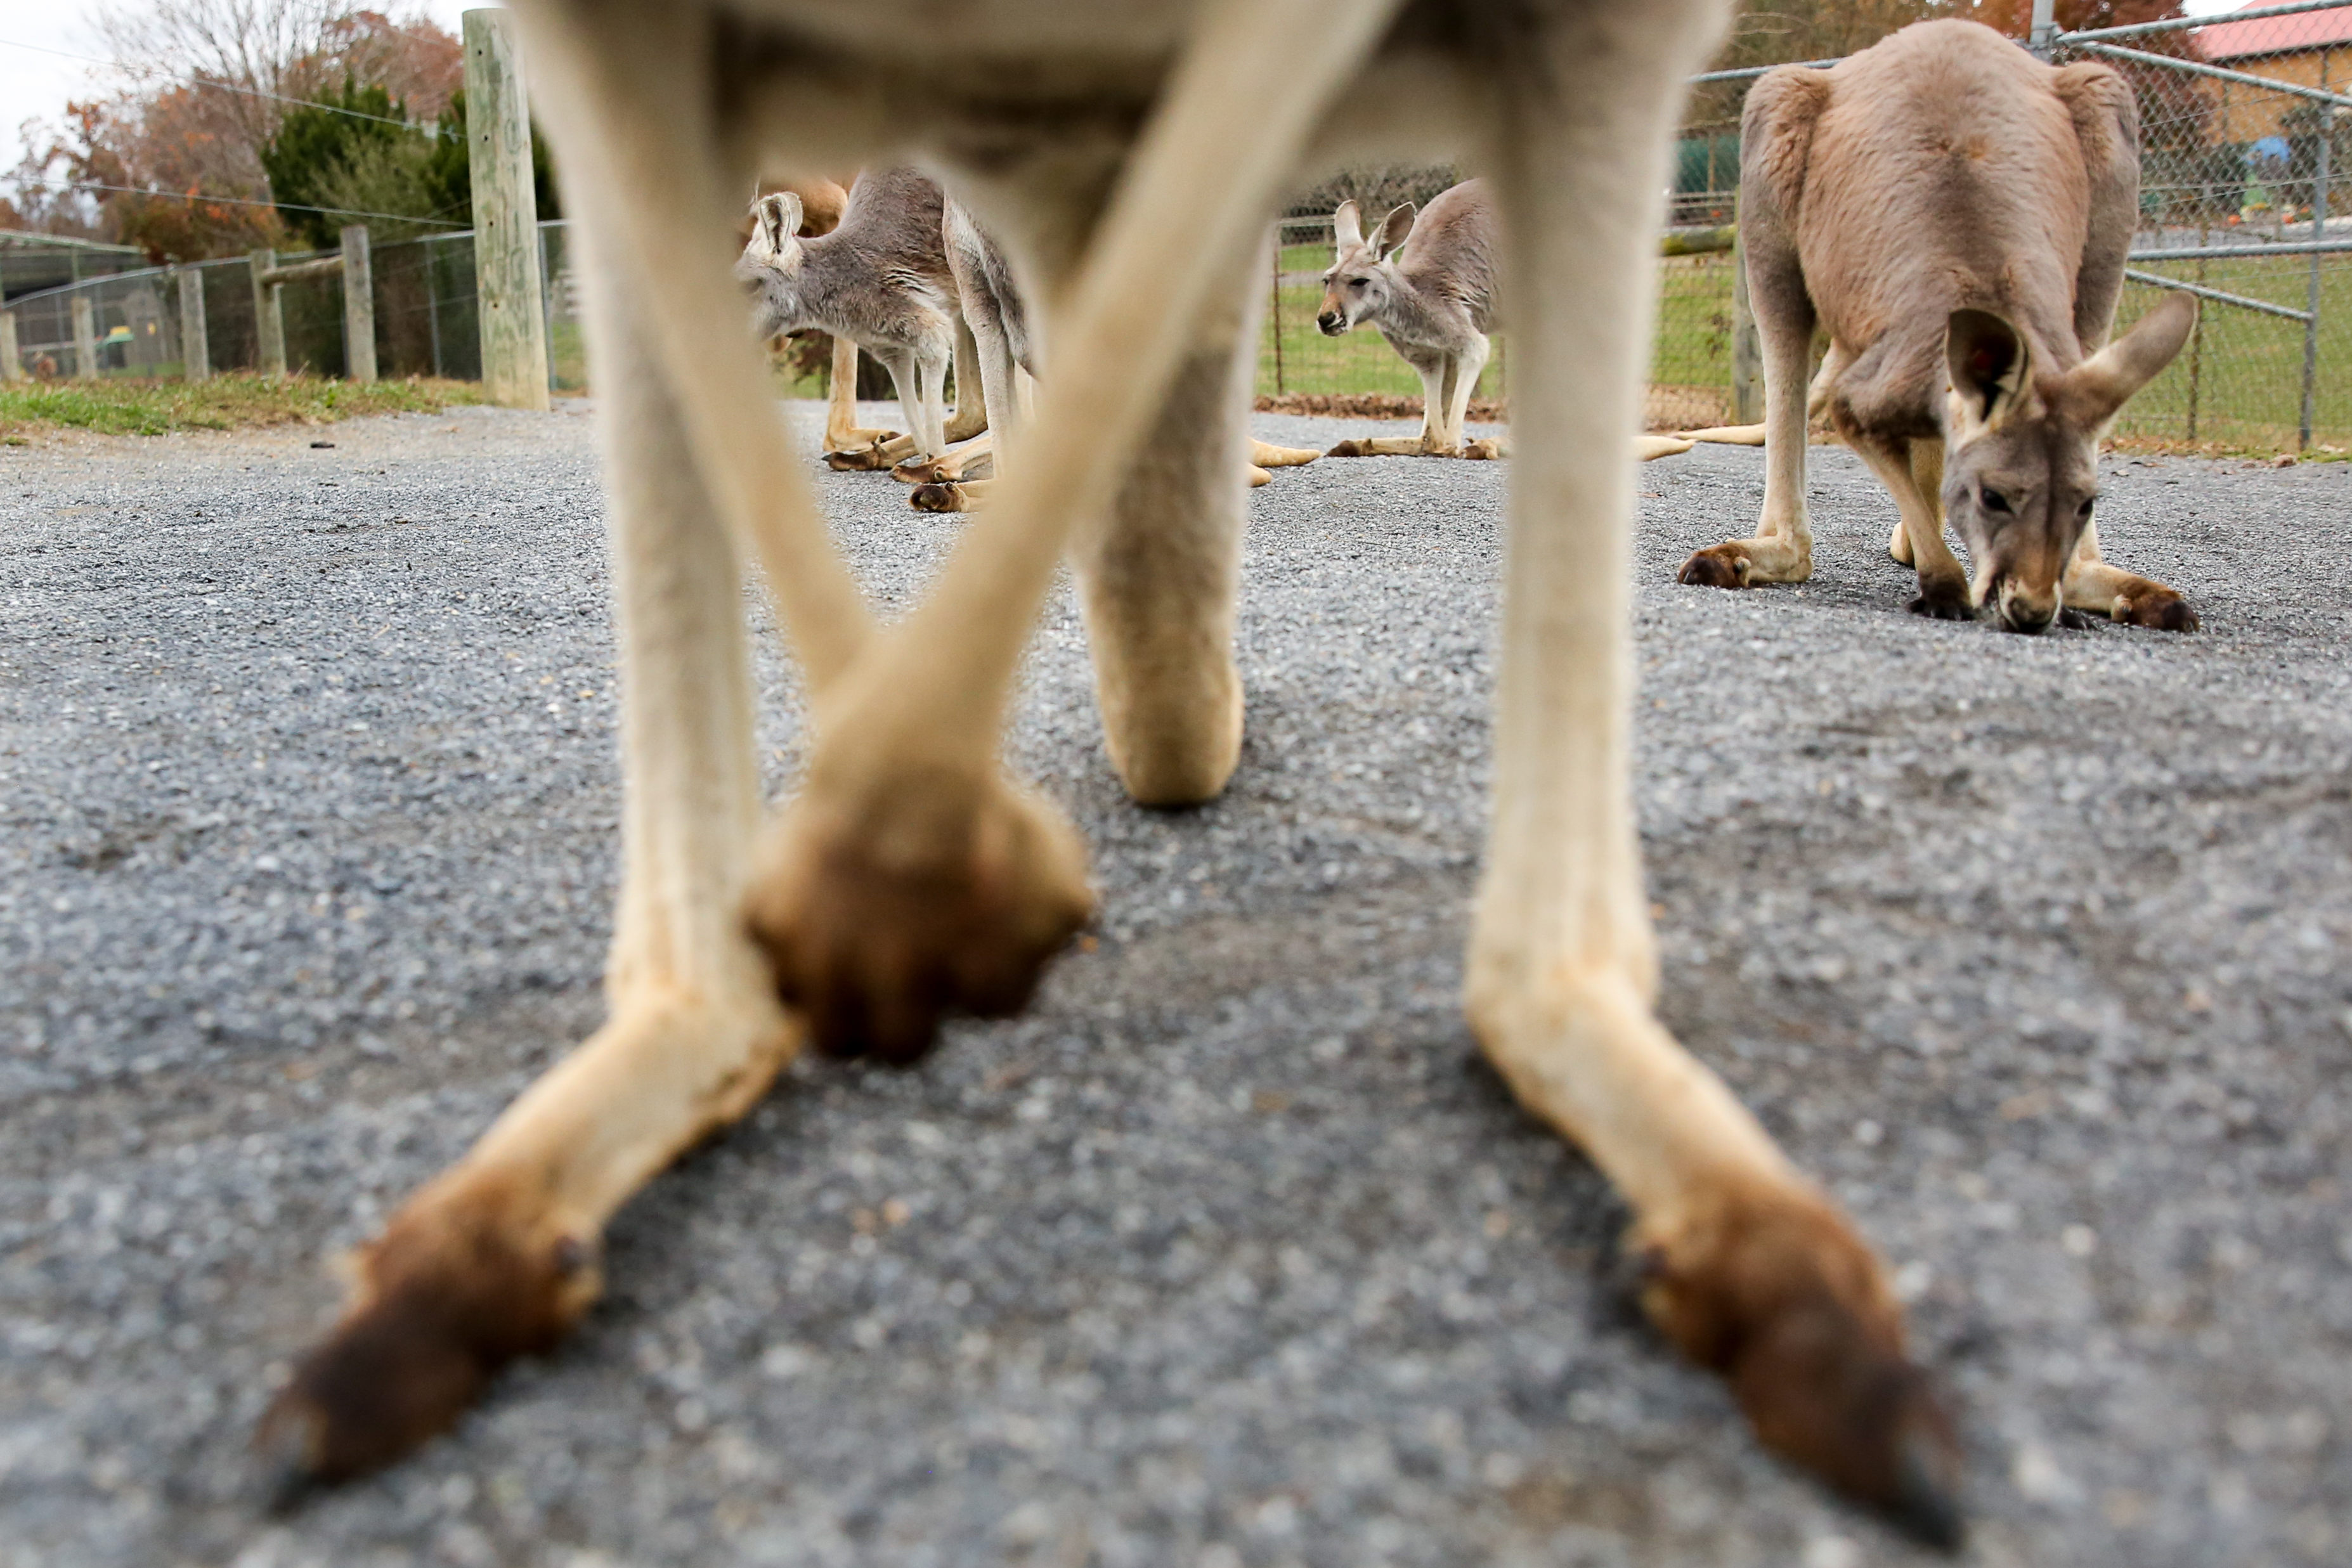 November, 2017. Kangaroos approach the camera at Virginia Safari Park.{&amp;nbsp;} (Amanda Andrade-Rhoades/DC Refined)<p></p>